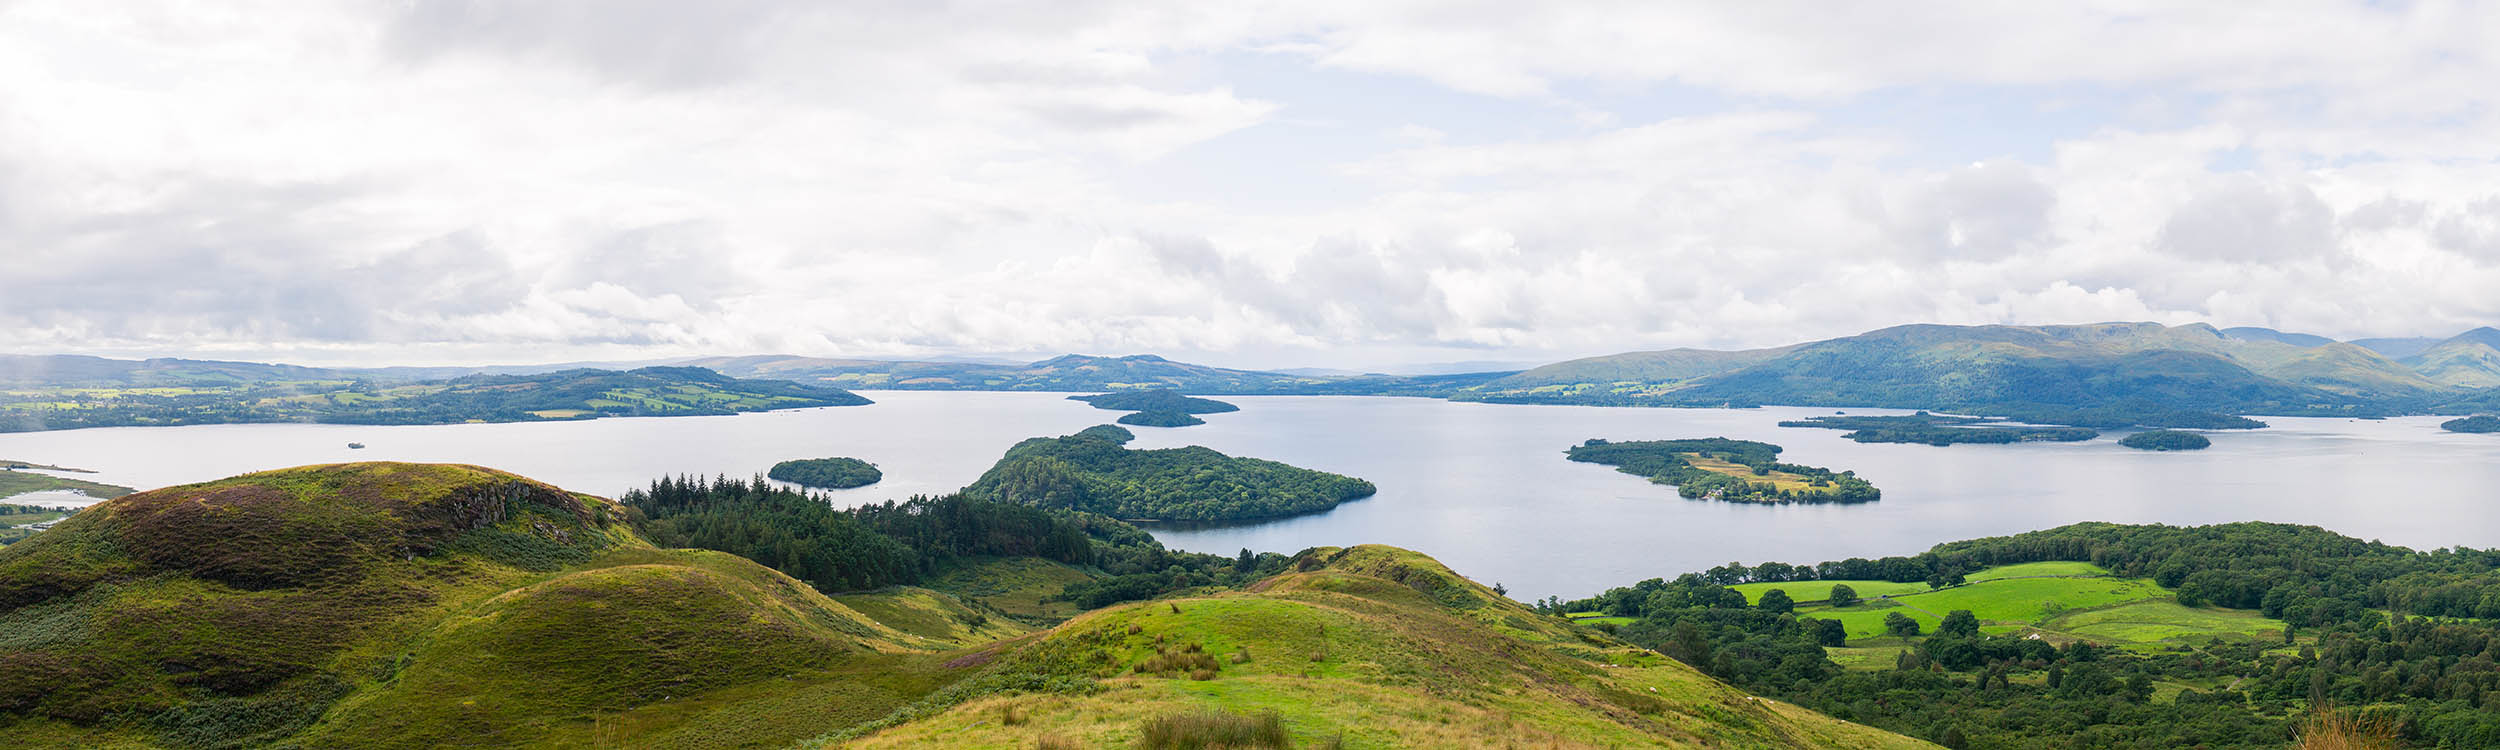 SCOTLAND_LOCHLOMOND_CONICHILL_0002